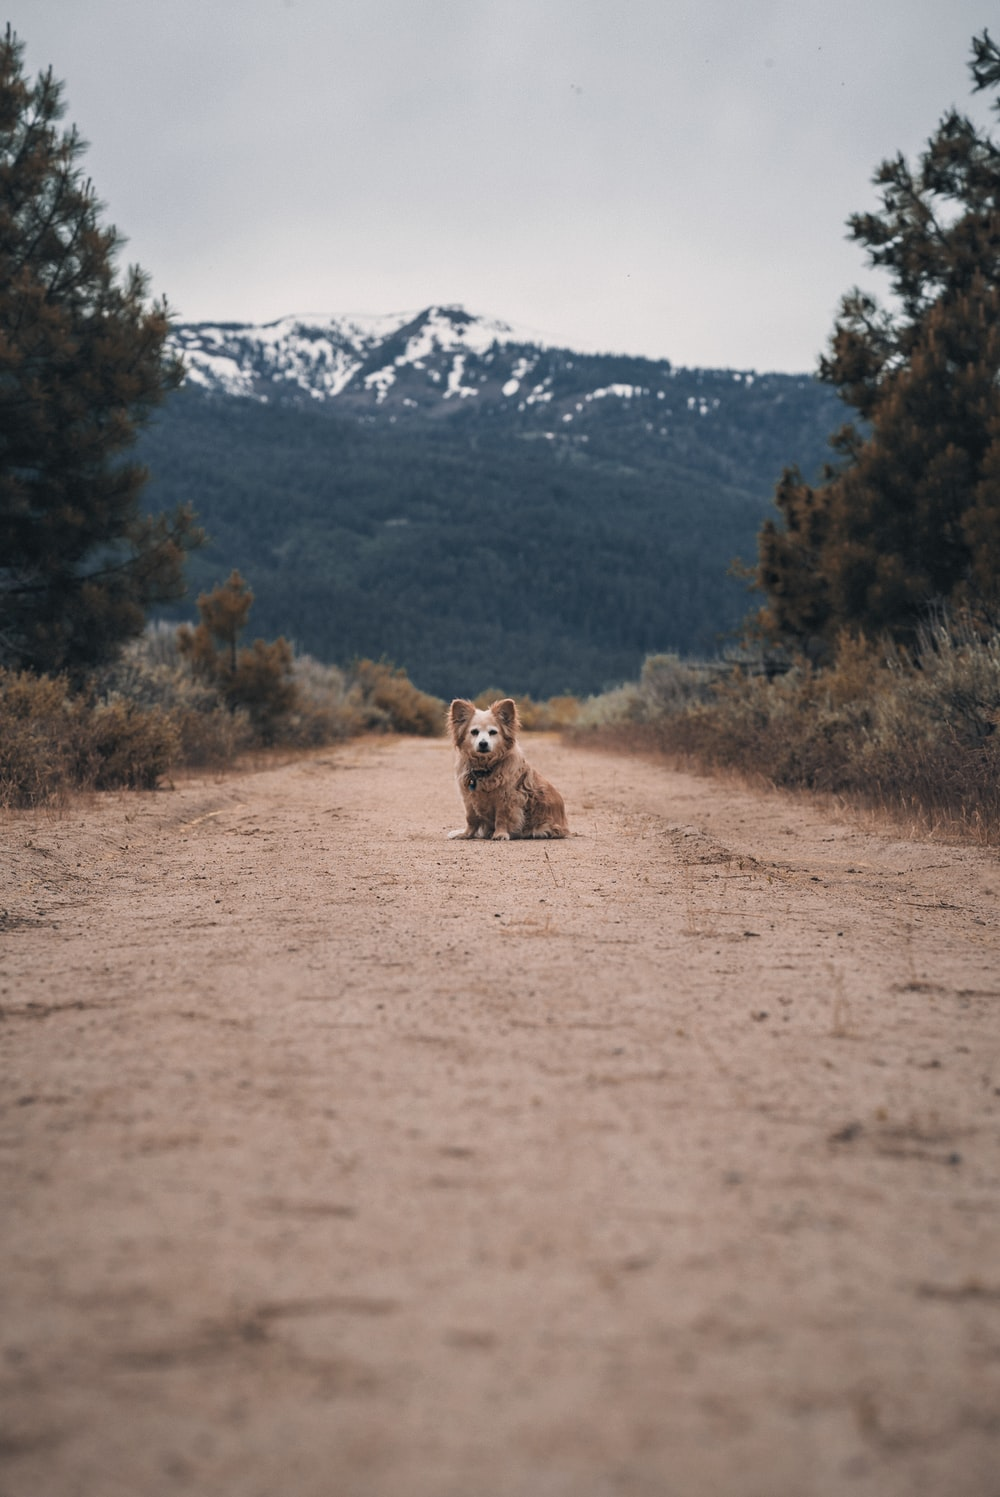 brown and white animal on brown dirt road during daytime